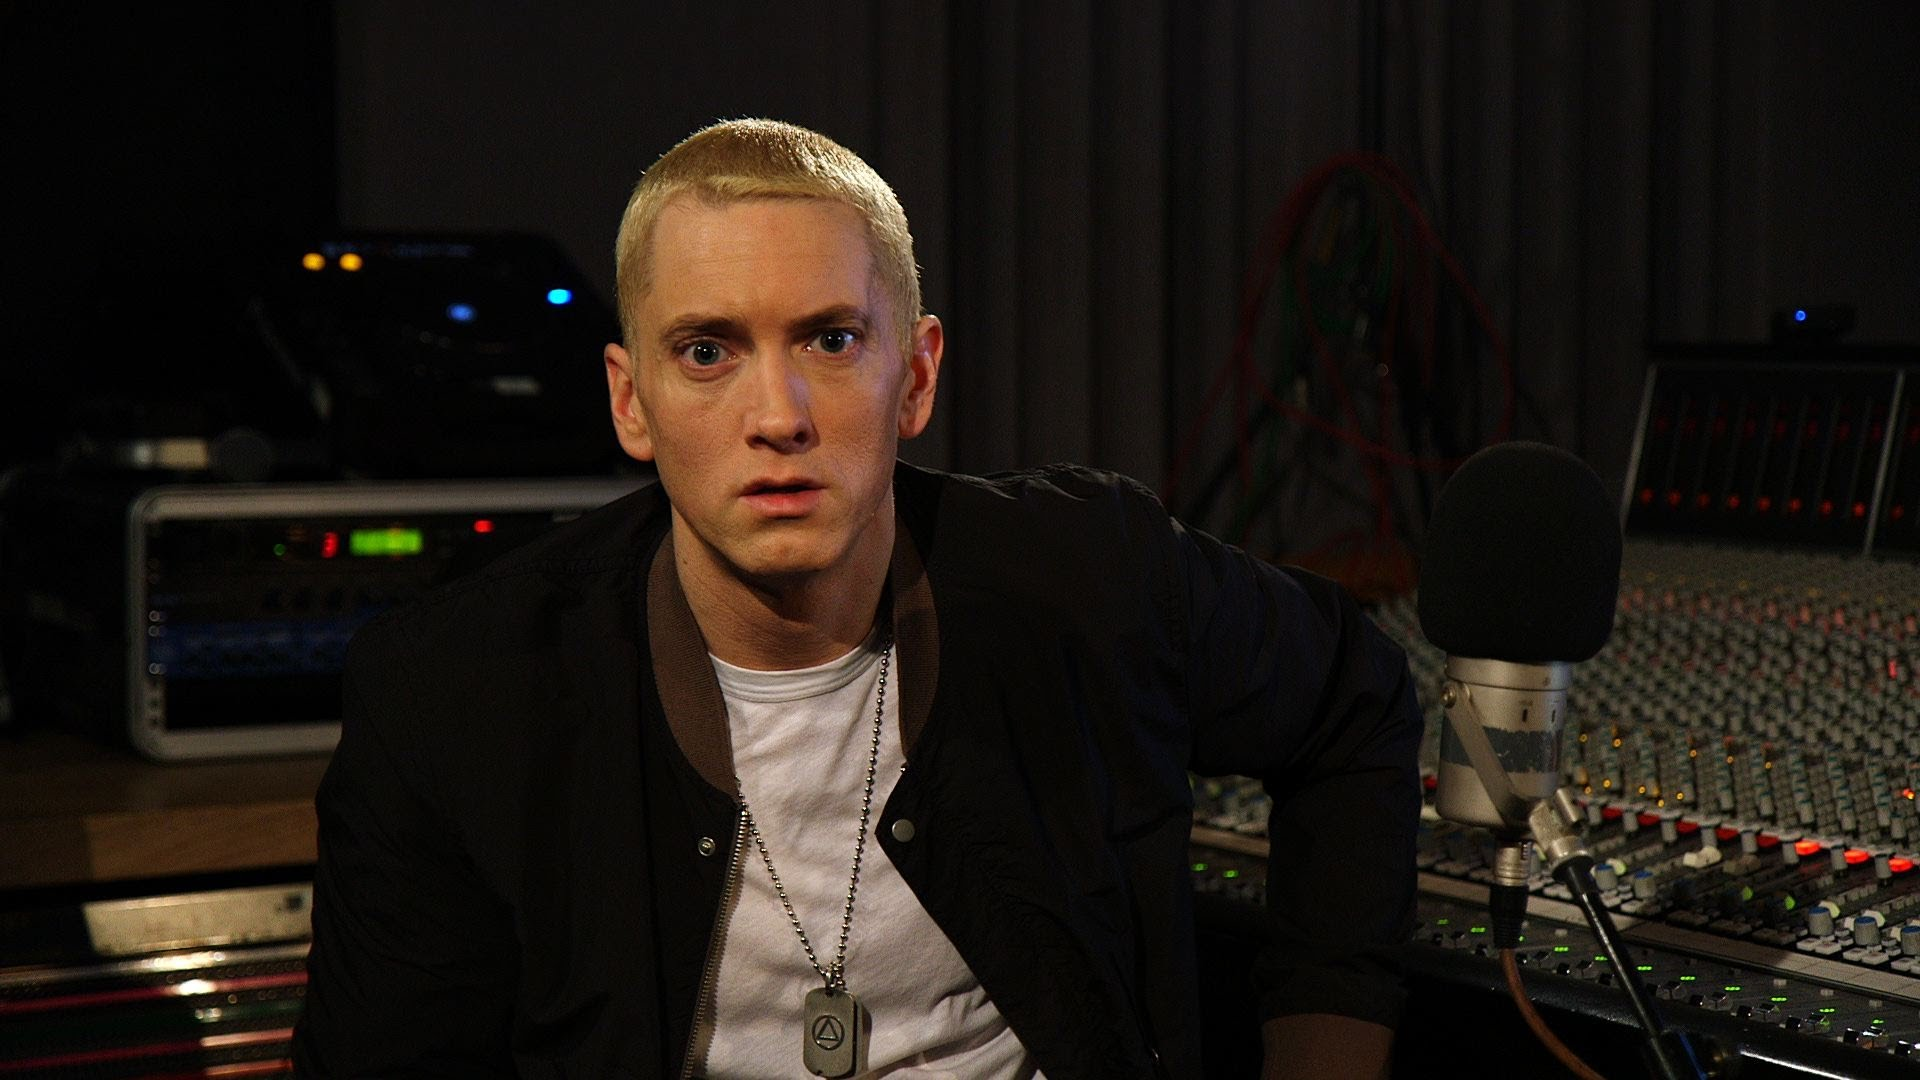 Zane Lowe Interviews Eminem [Full Interview]